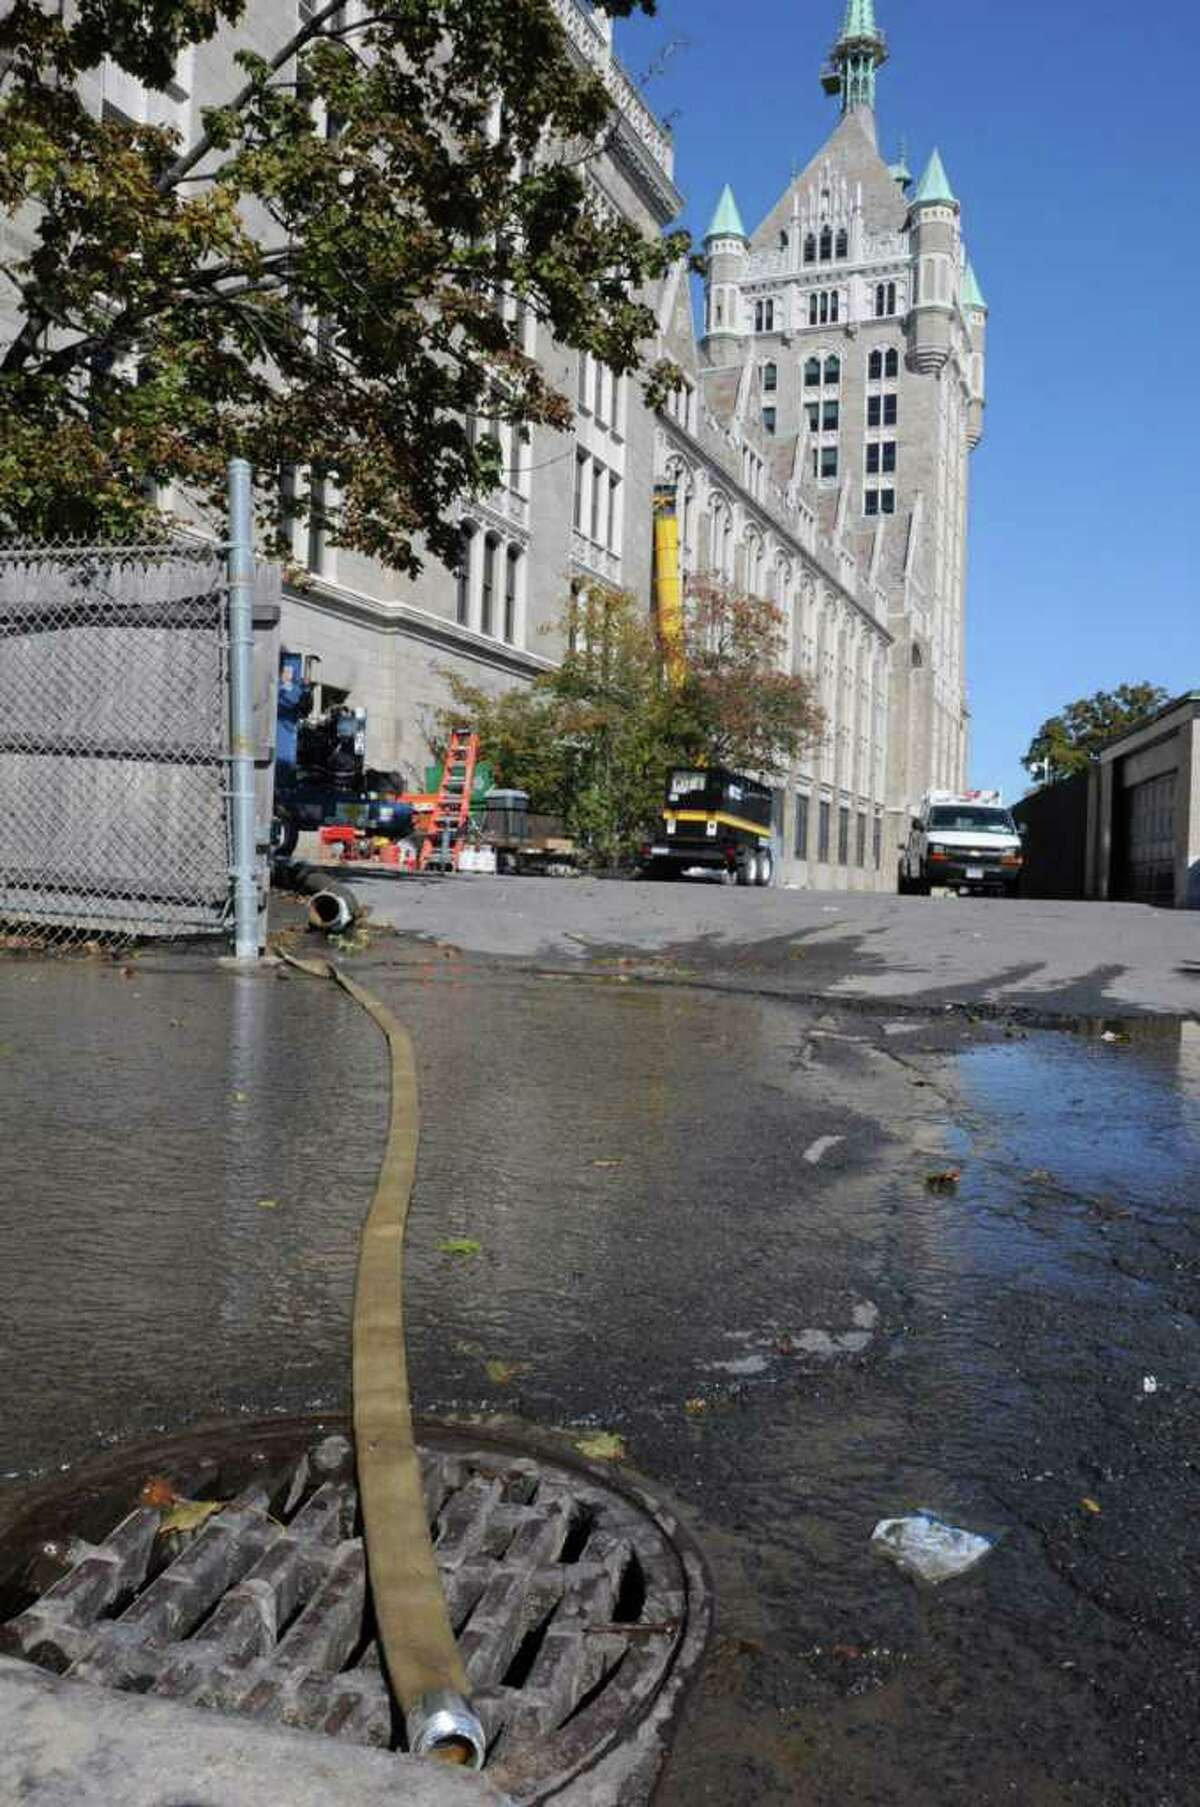 Water is pumped out of the SUNY headquarters building in Albany on October 12, 2010. Hundreds of workers have been told not to report to work because of a major water emergency that knocked out the power, computers and telephone systems. (Lori Van Buren / Times Union)